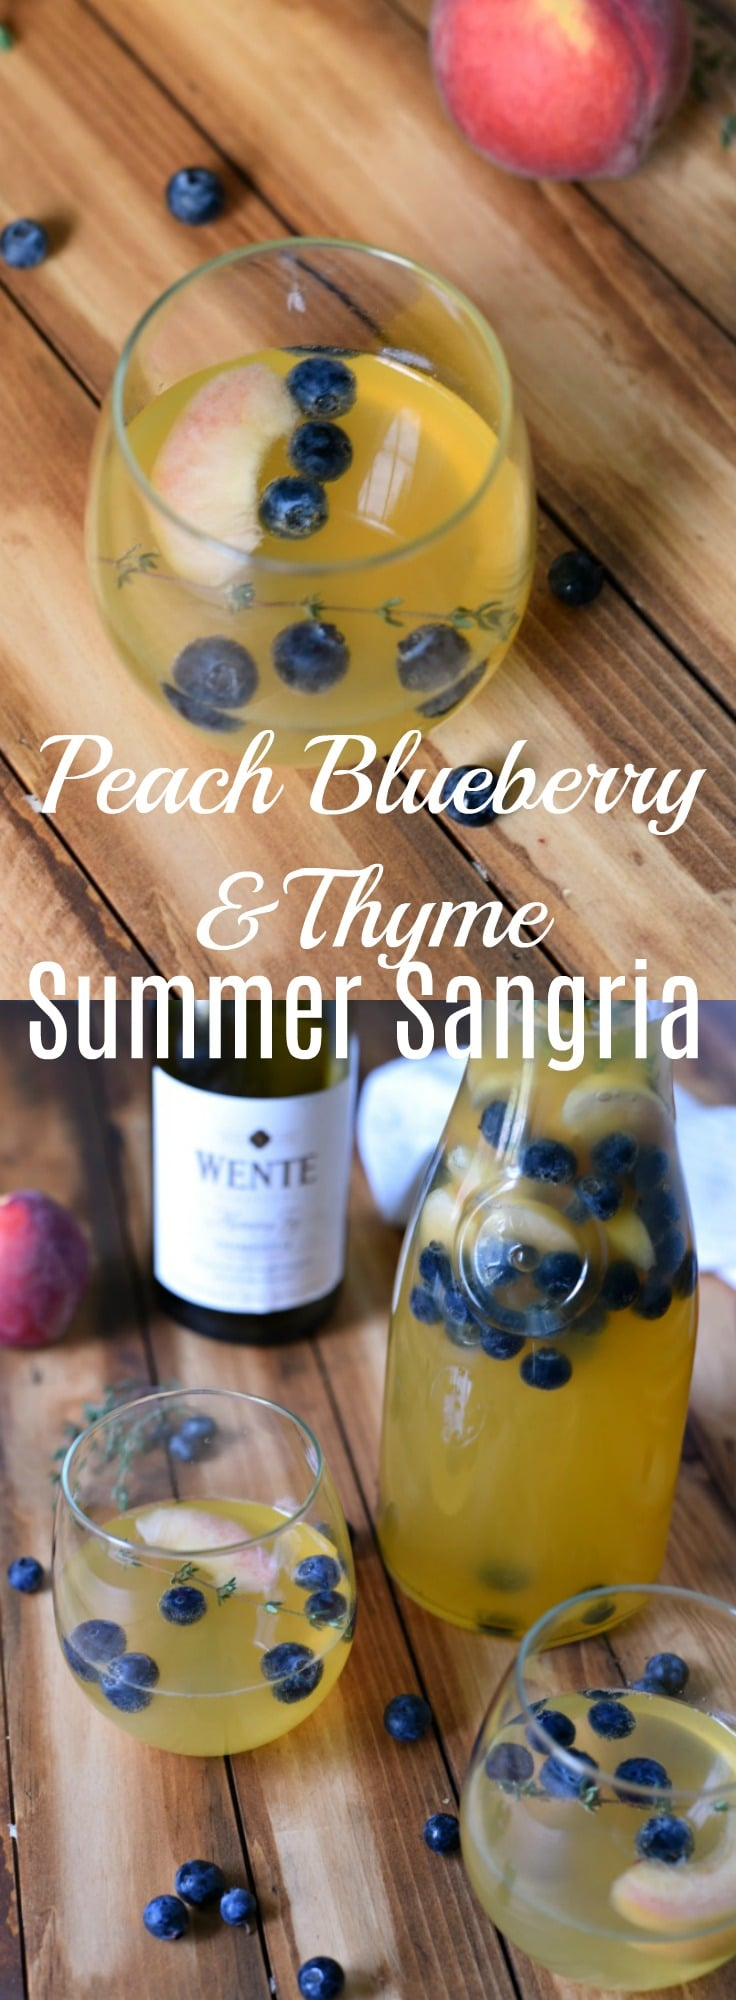 Peach, Blueberry and Thyme Summer Sangria Recipe - This chardonnay sangria is